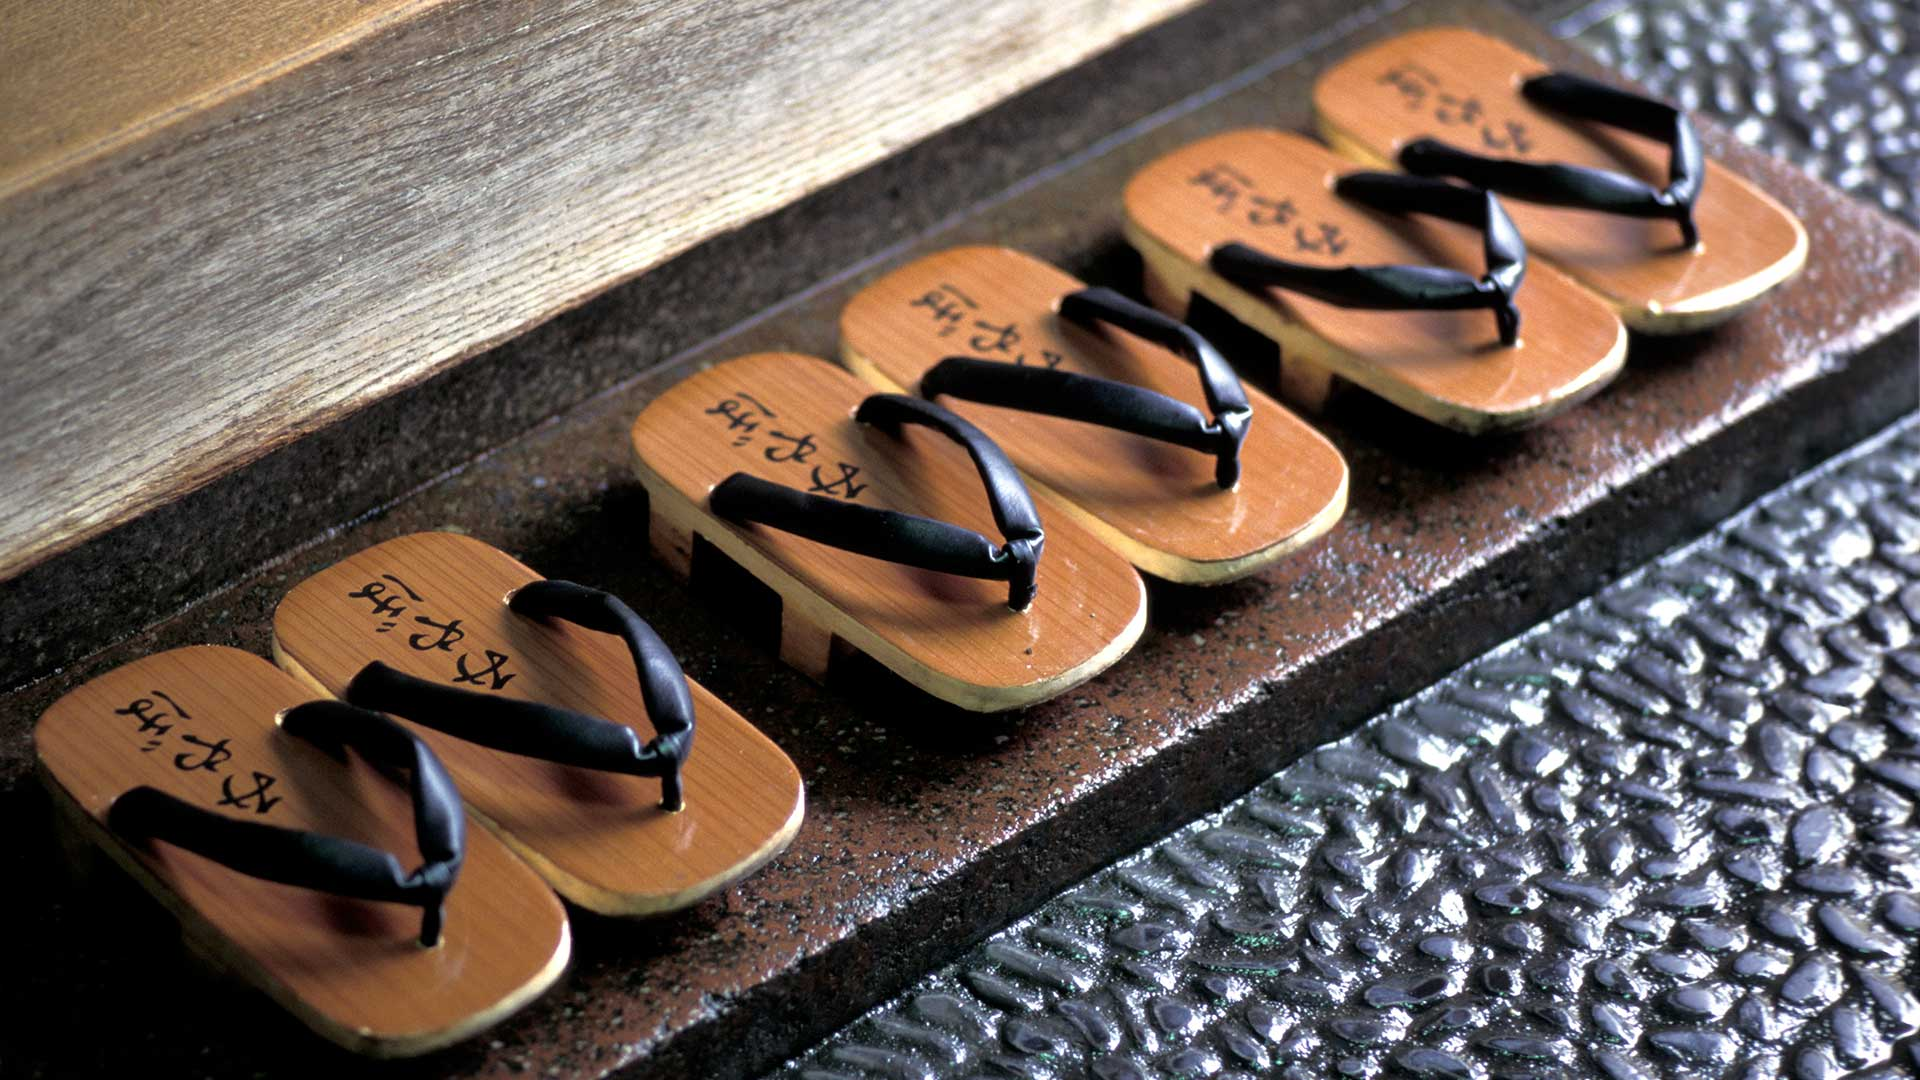 Traditional sandals a Ryokan